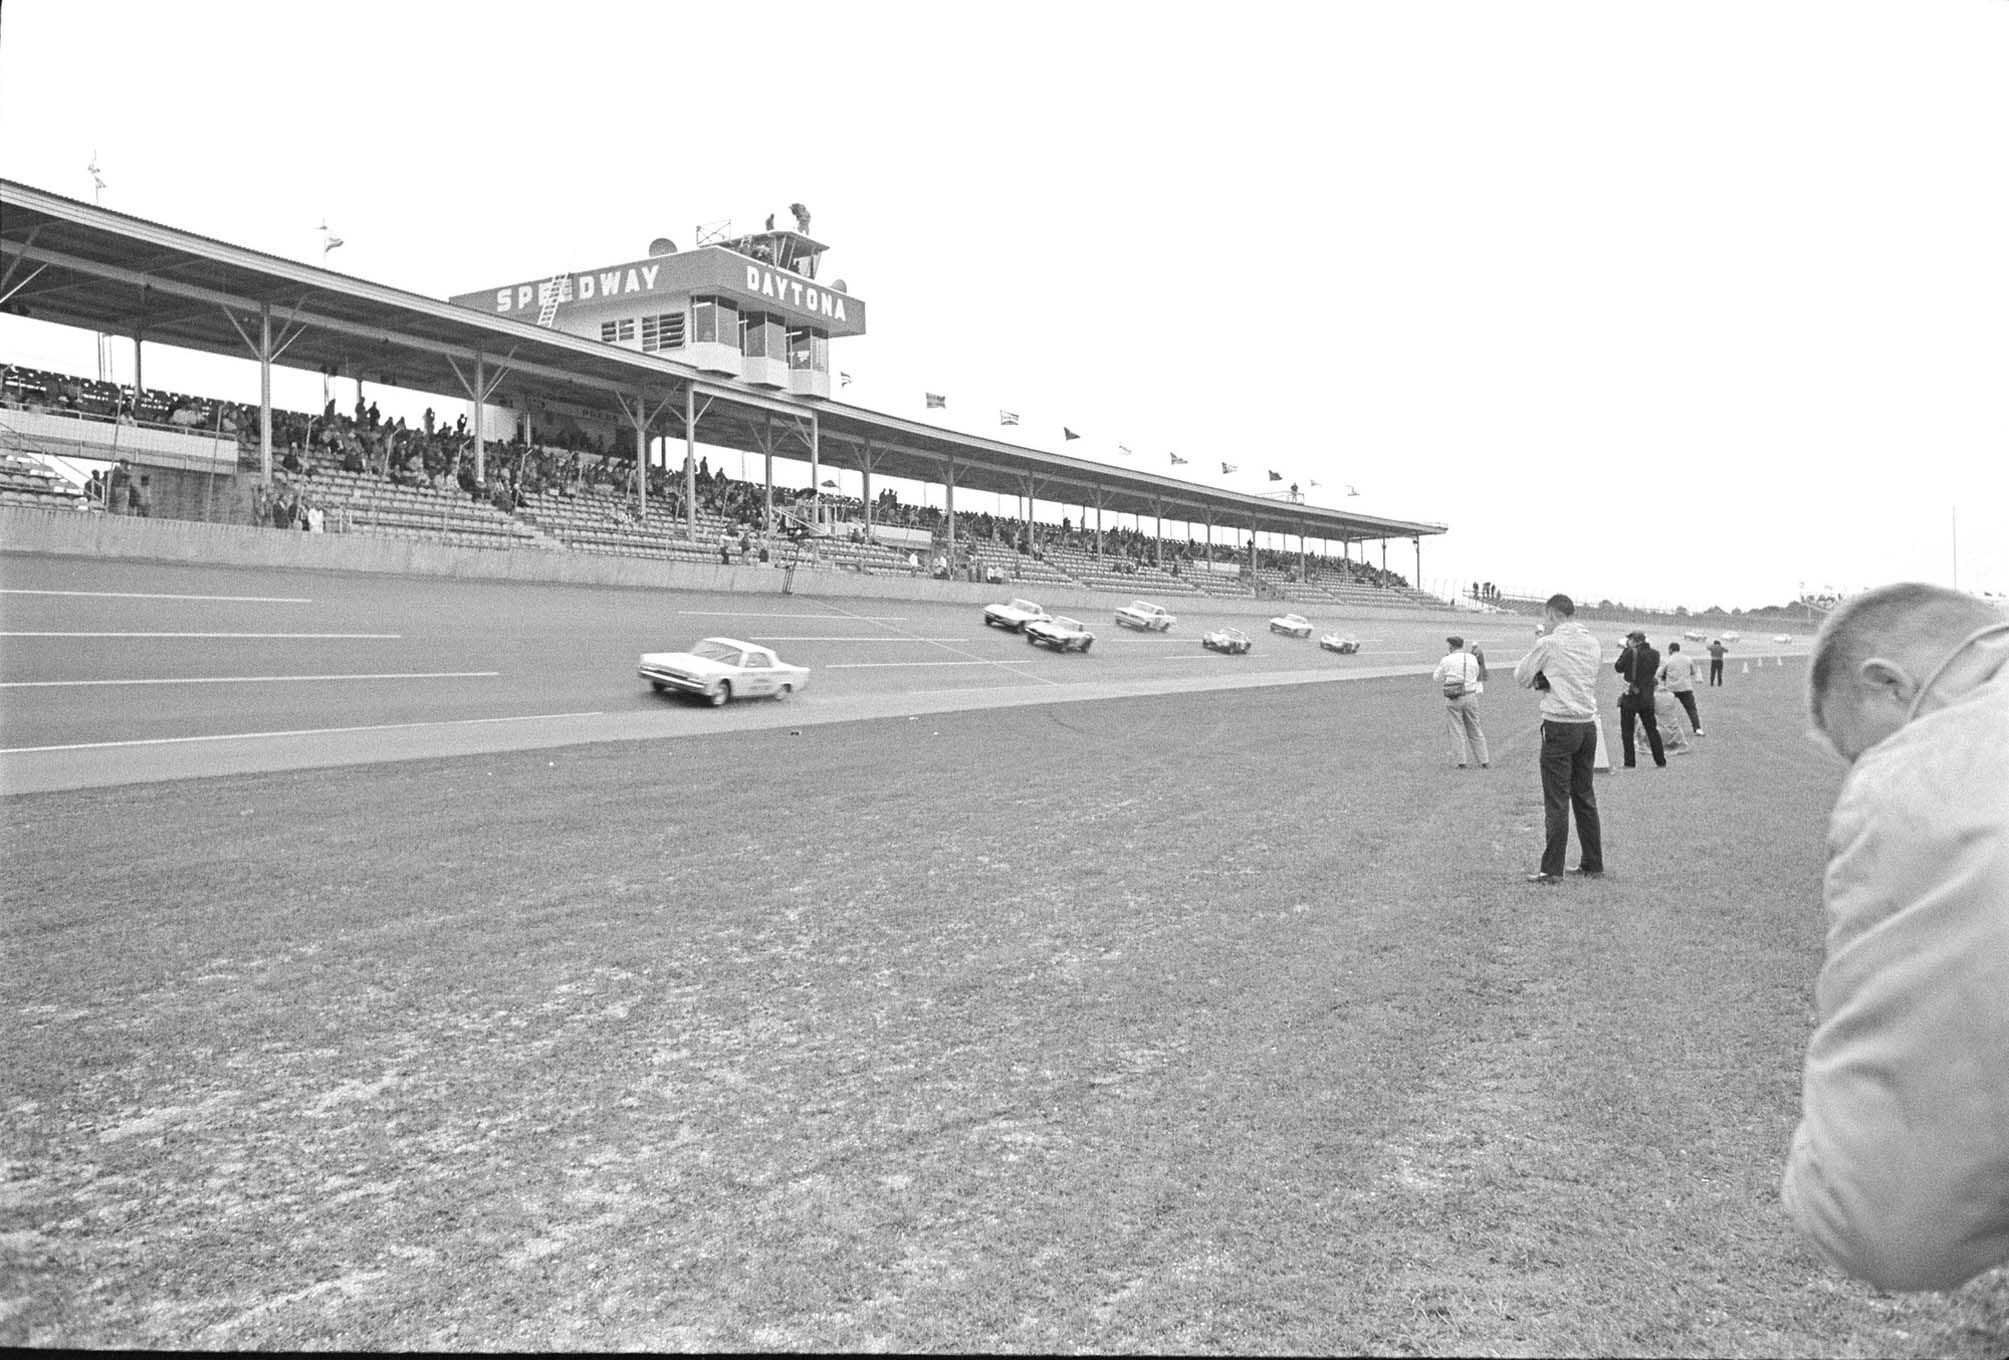 Only 12 cars began the American Challenge Cup race.